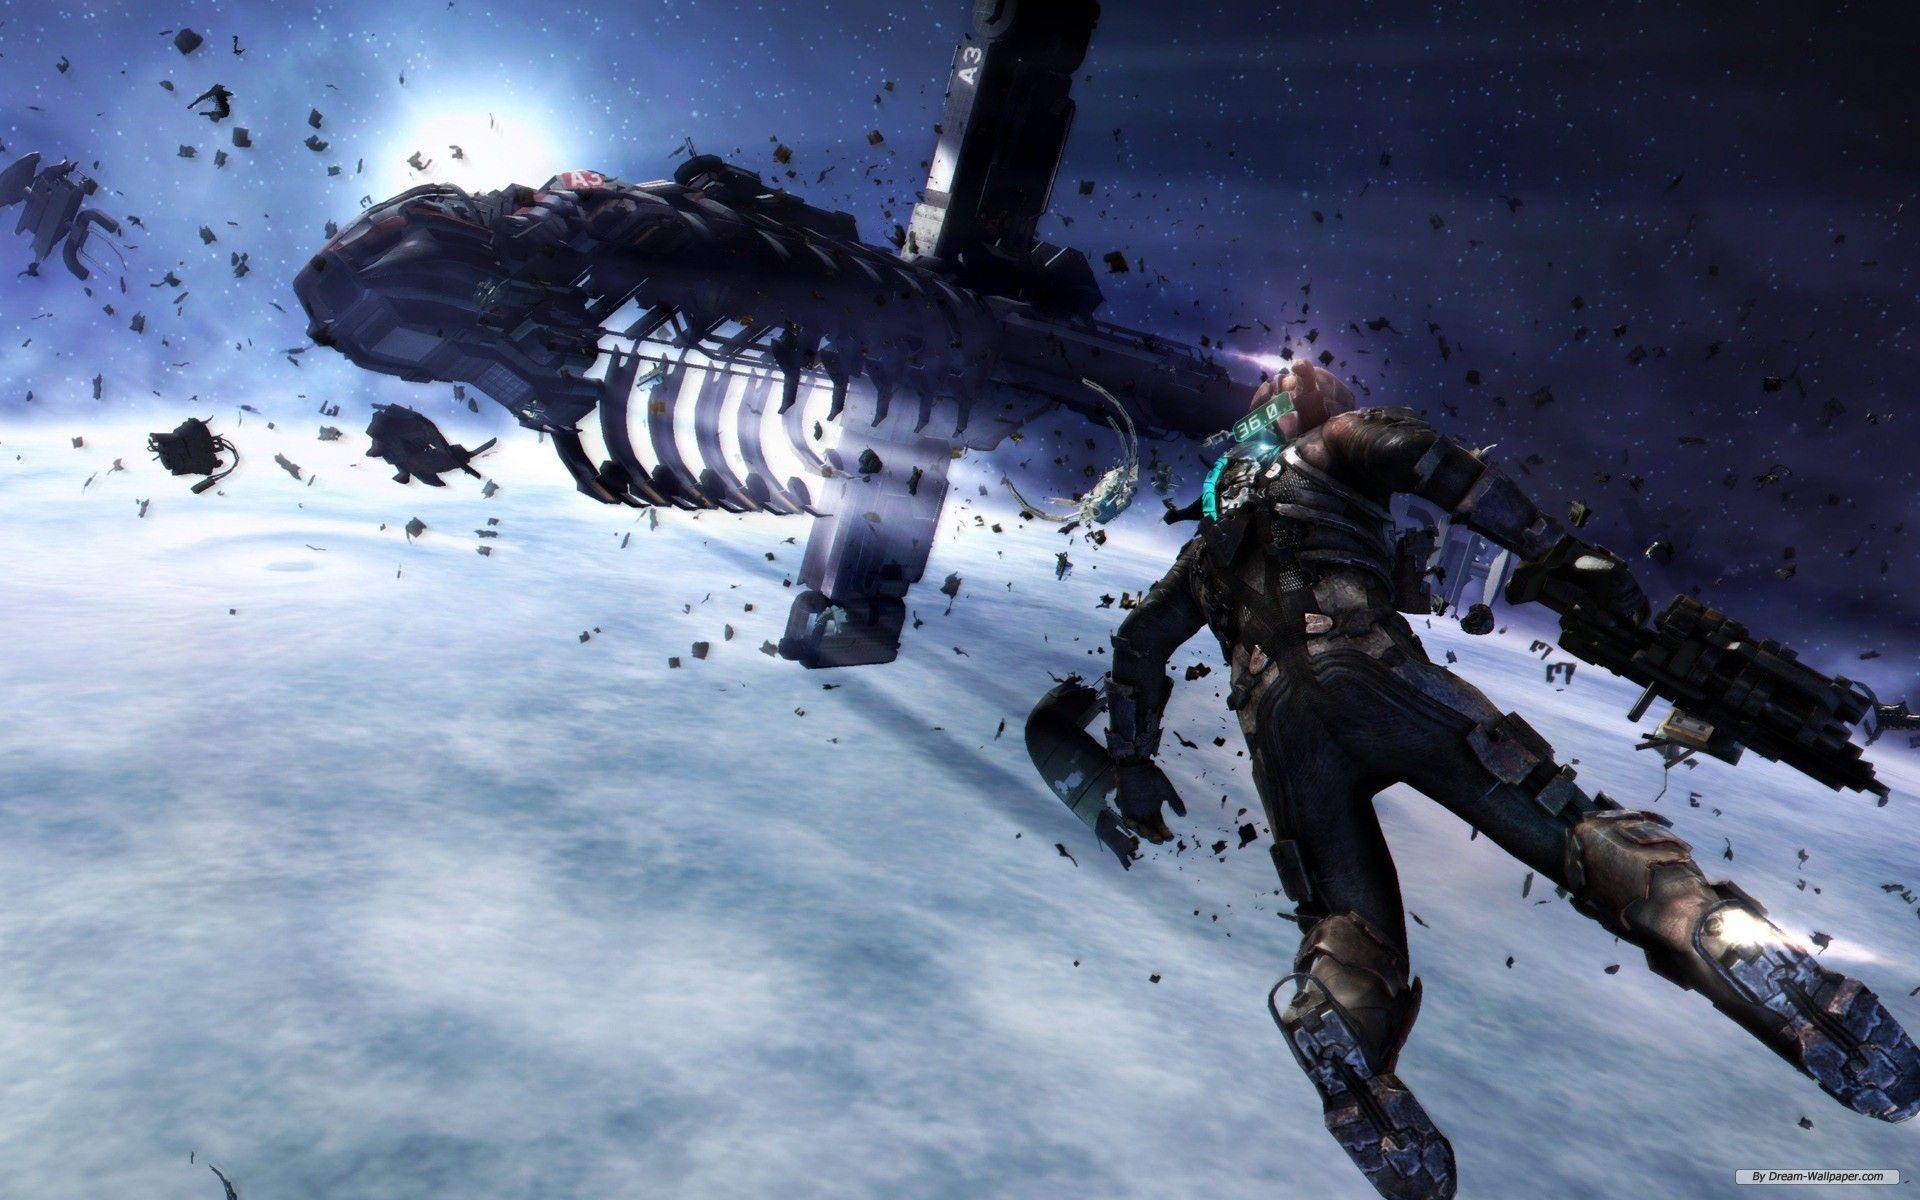 Undefined Dead Space Wallpaper 32 Wallpapers Adorable Wallpapers Dead Space Survival Horror Game Sci Fi Movies